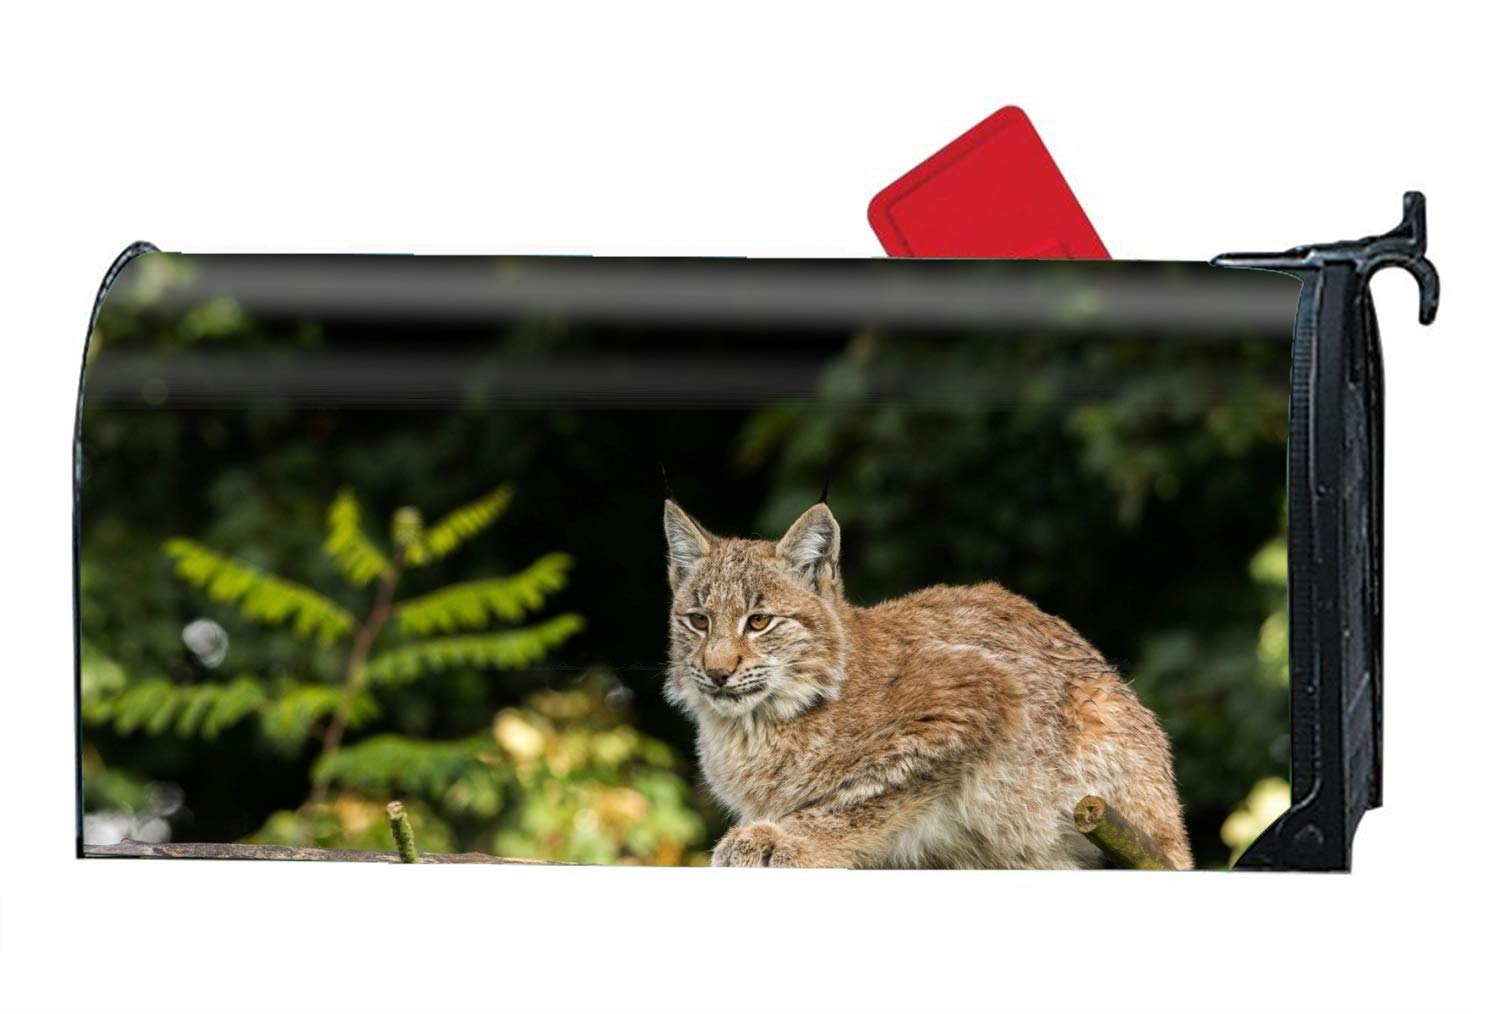 MAILL Animal Lynx Cats Mailbox Makeover - Magnetism PVC Magnetic Cover by MAILL